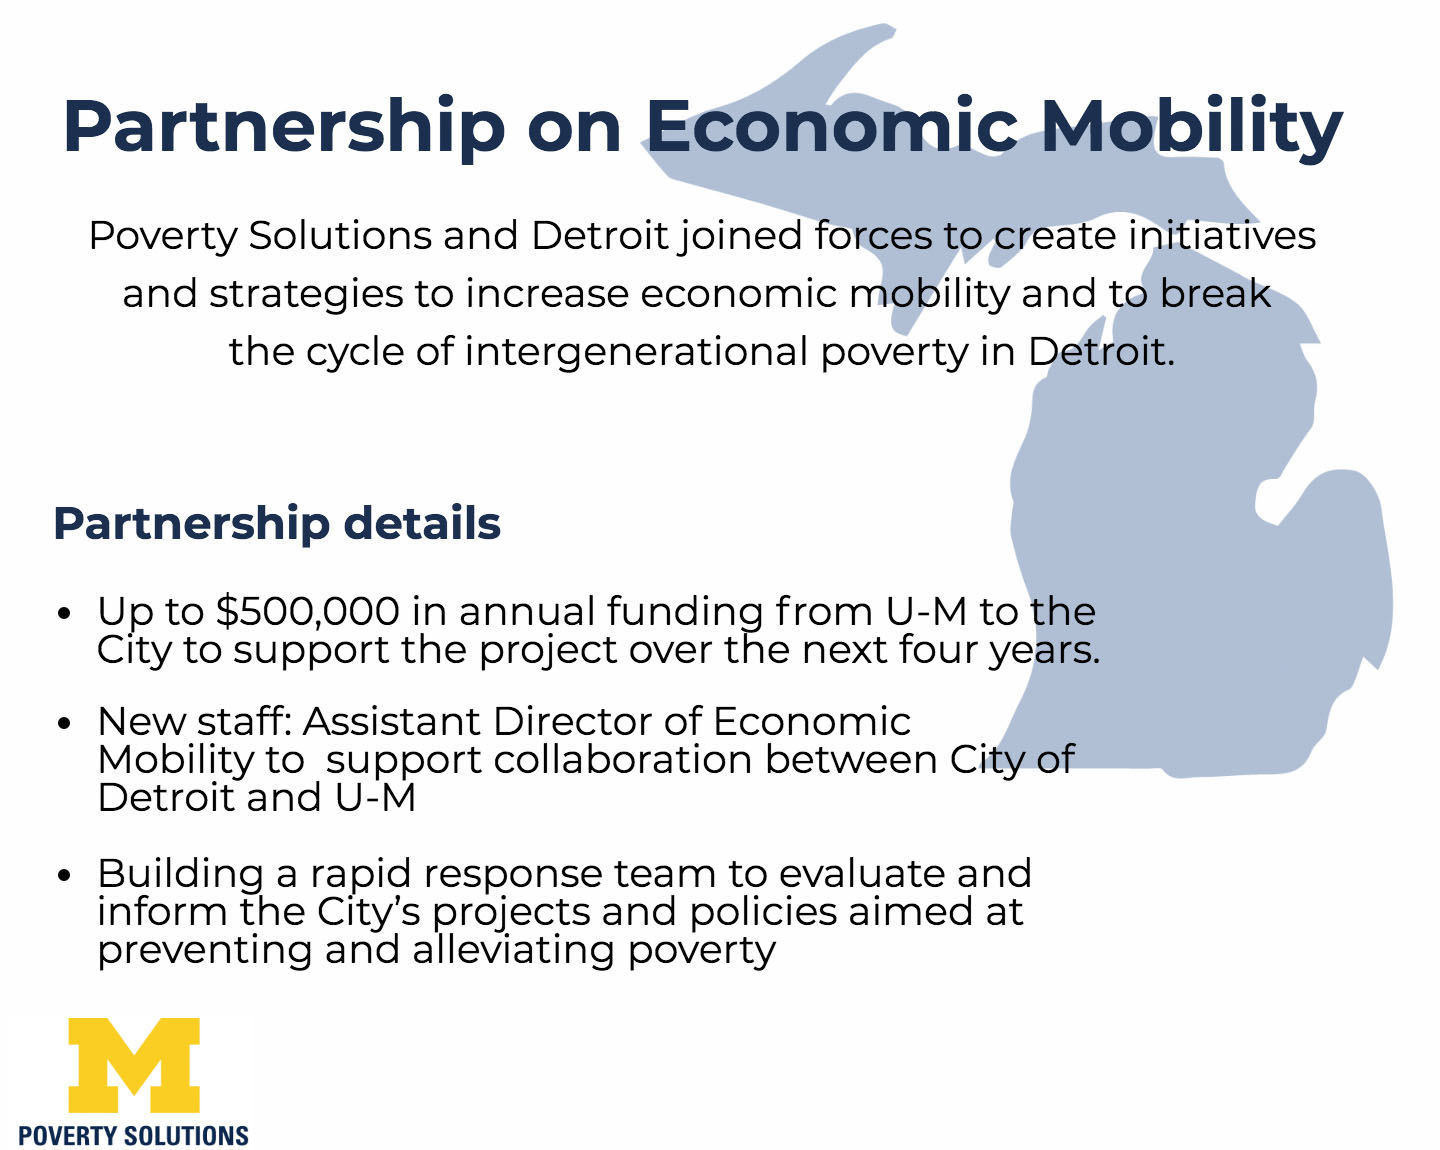 Partnership On Economic Mobility